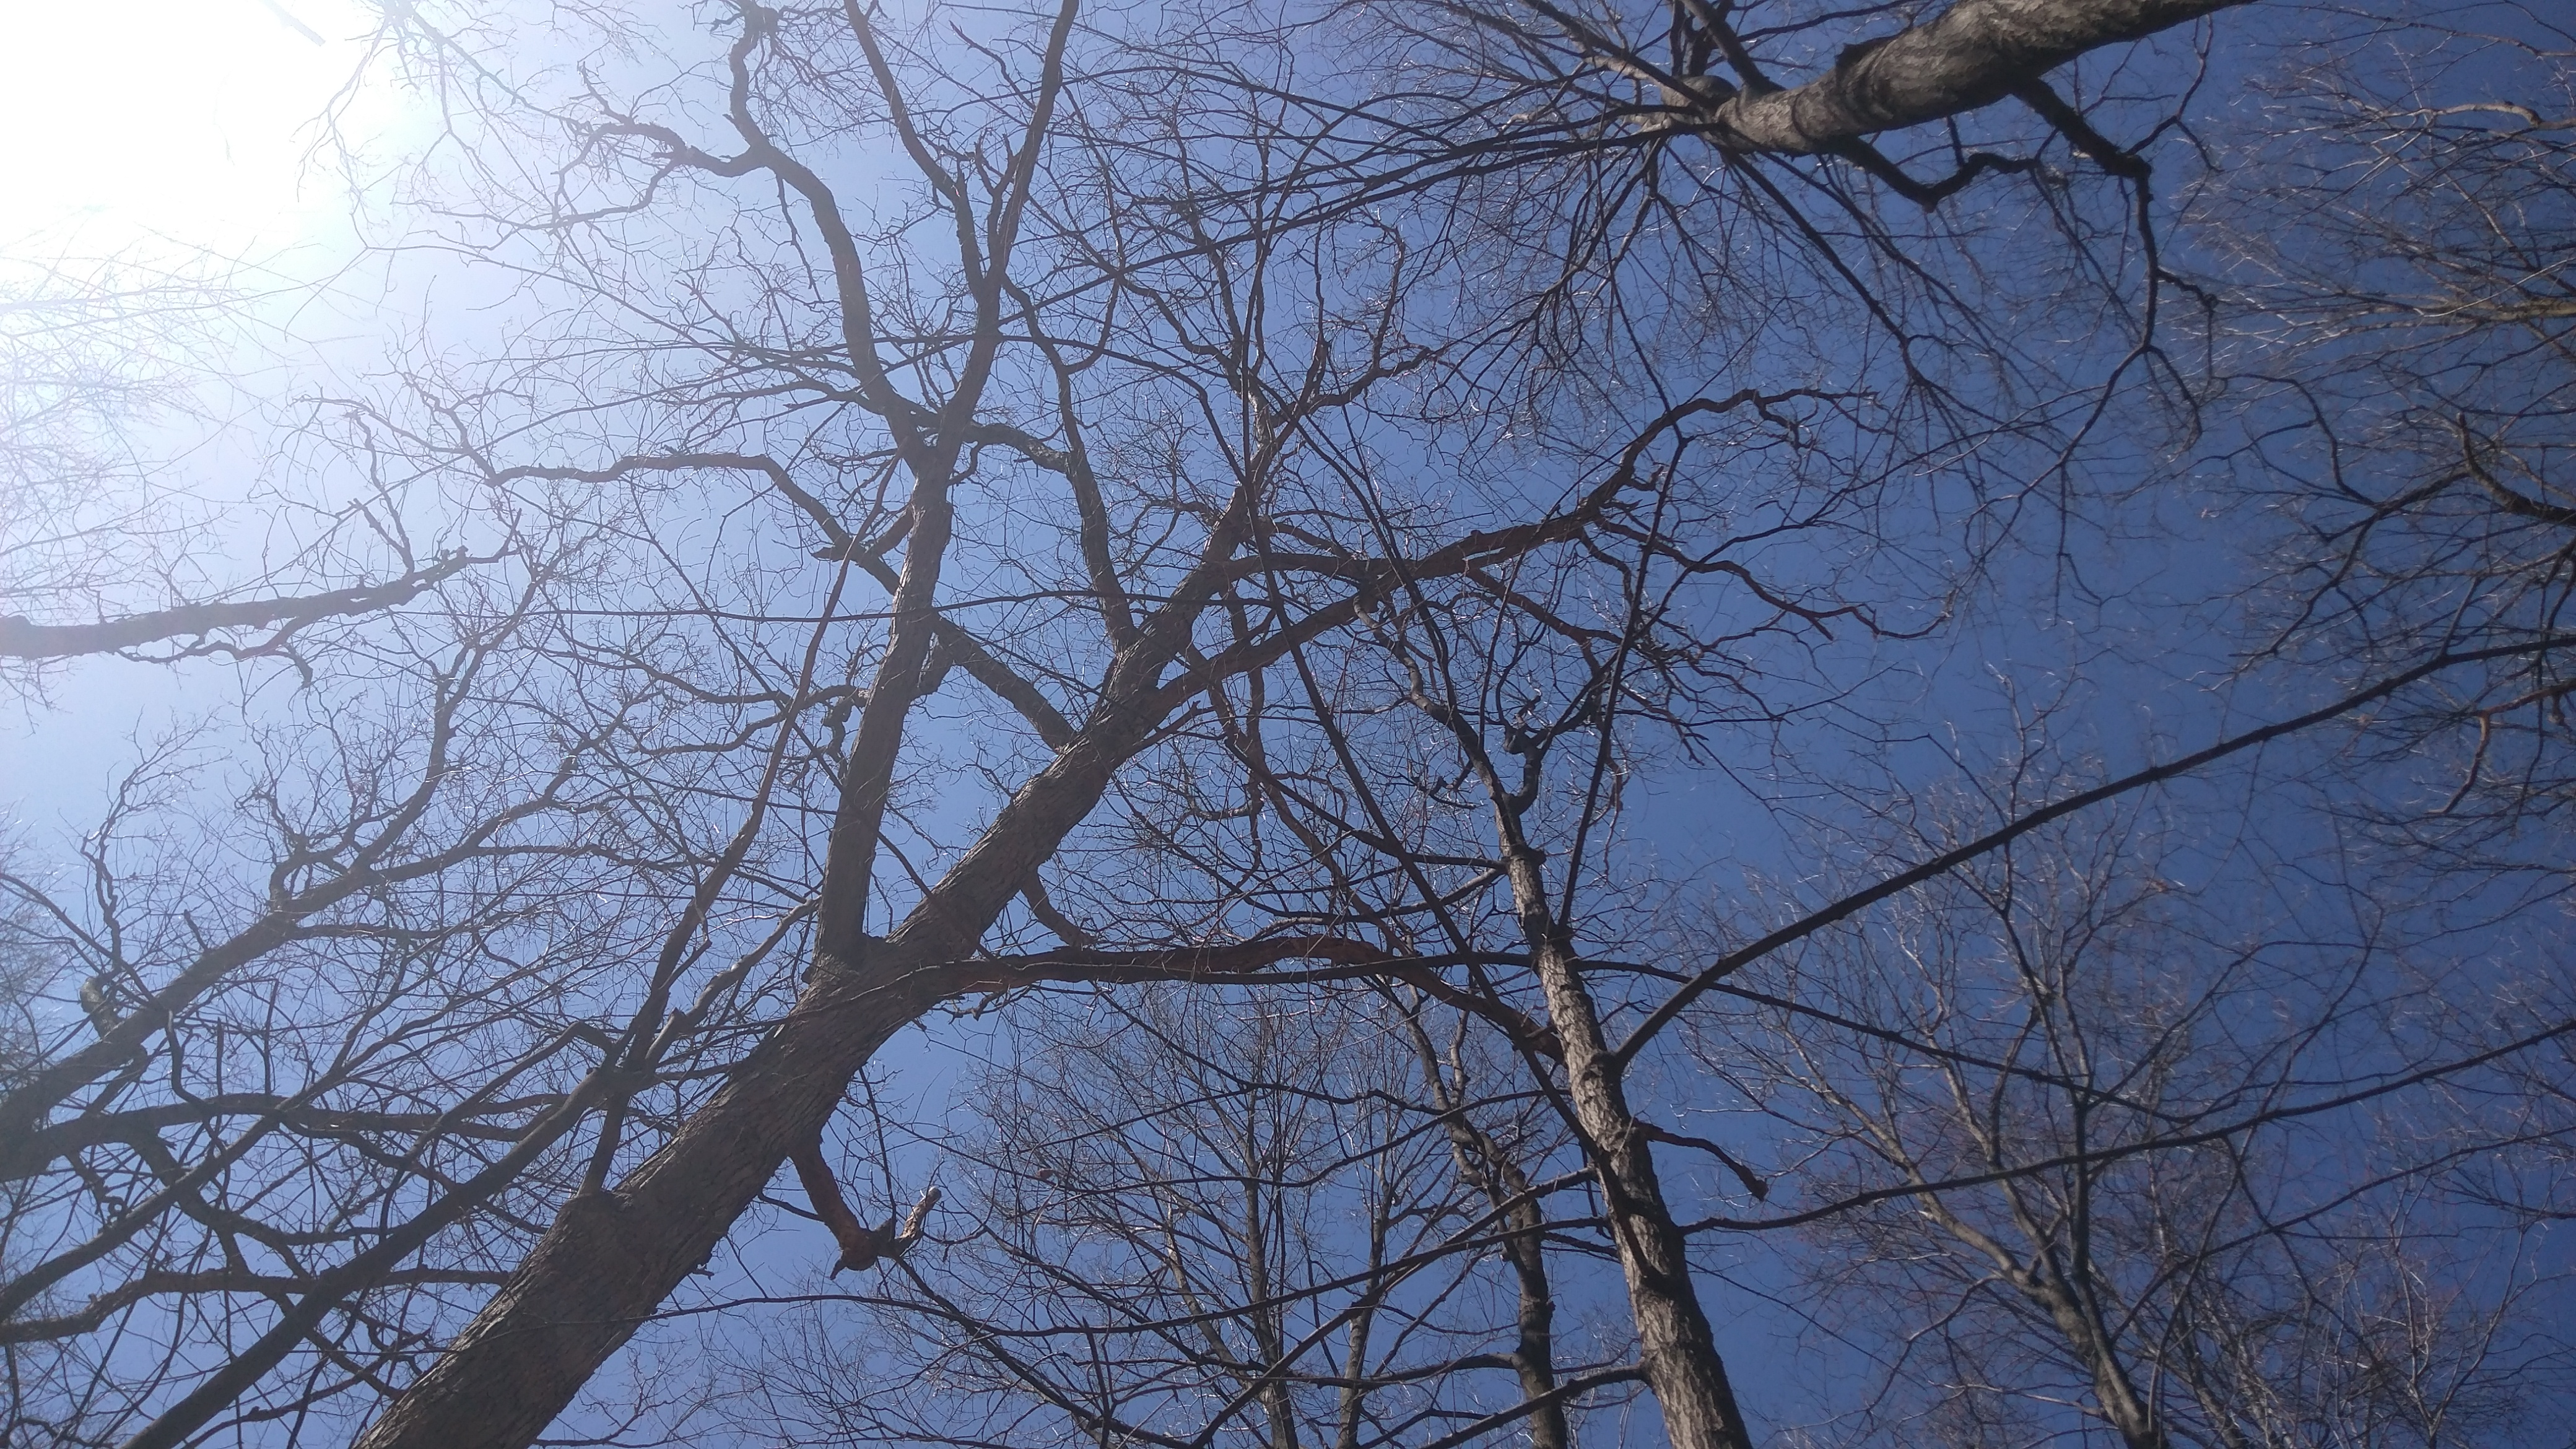 Early spring canopy conditions